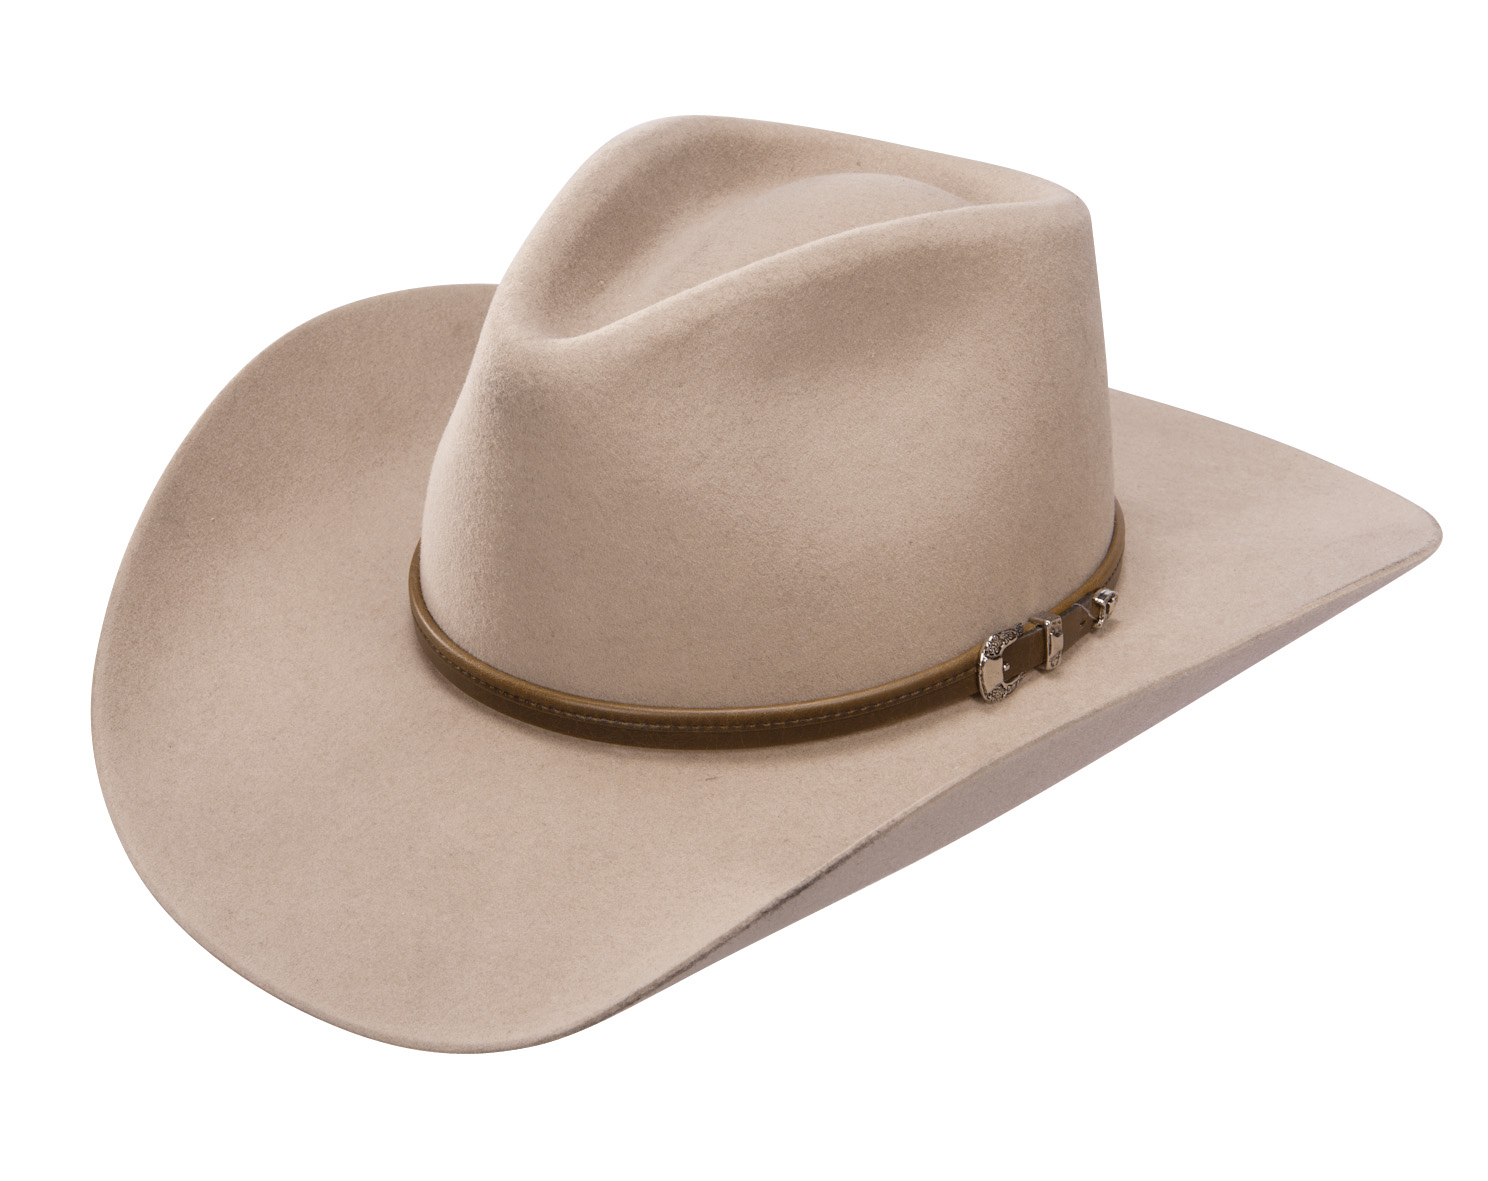 Cowboy Hats: Myths and Superstition -